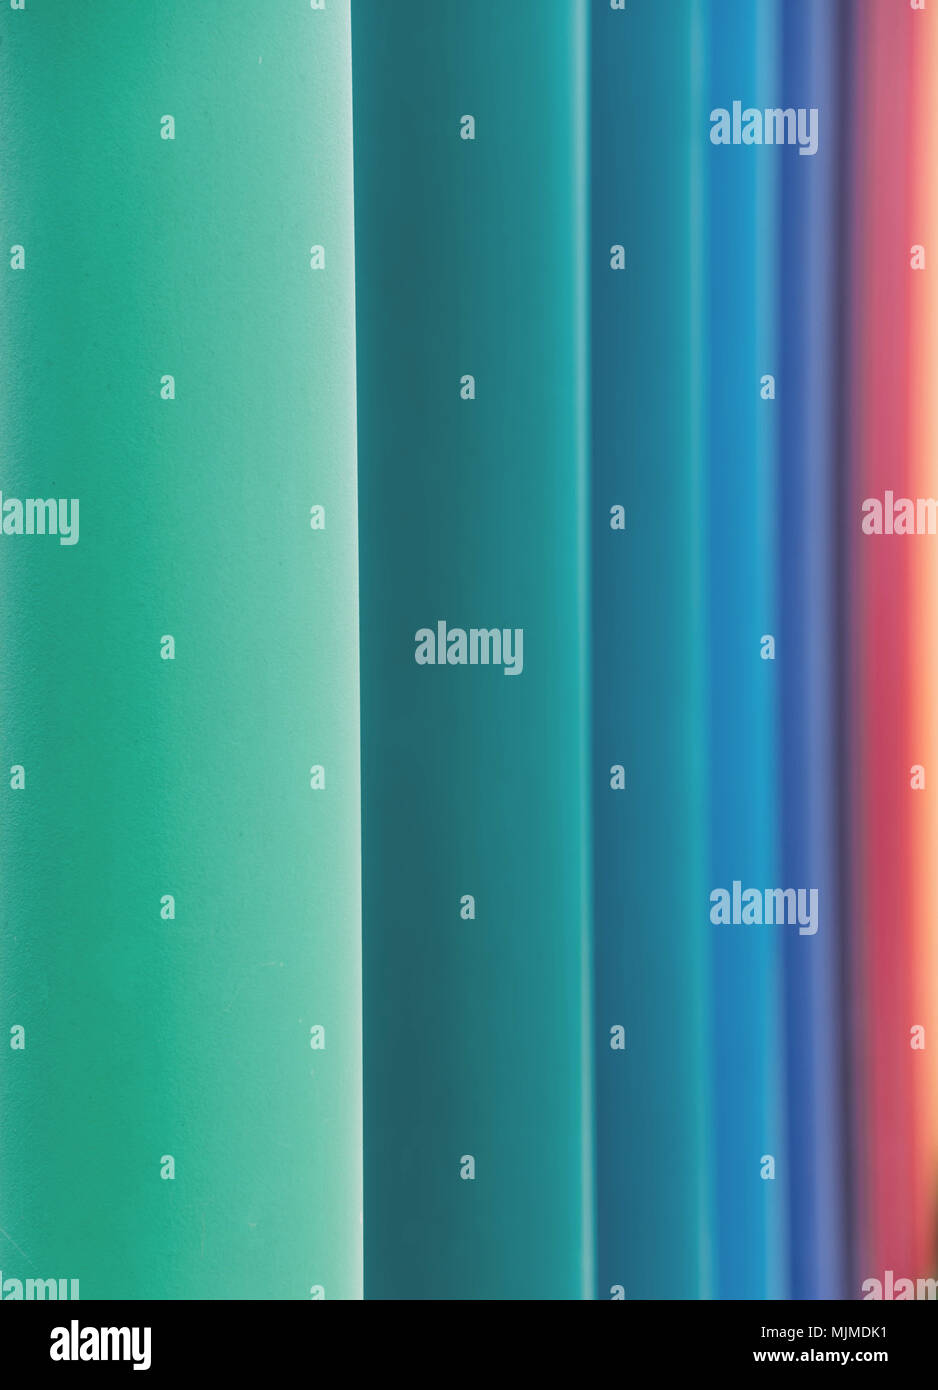 Overlapping colorful background in colors of rainbow spectrum. - Stock Image